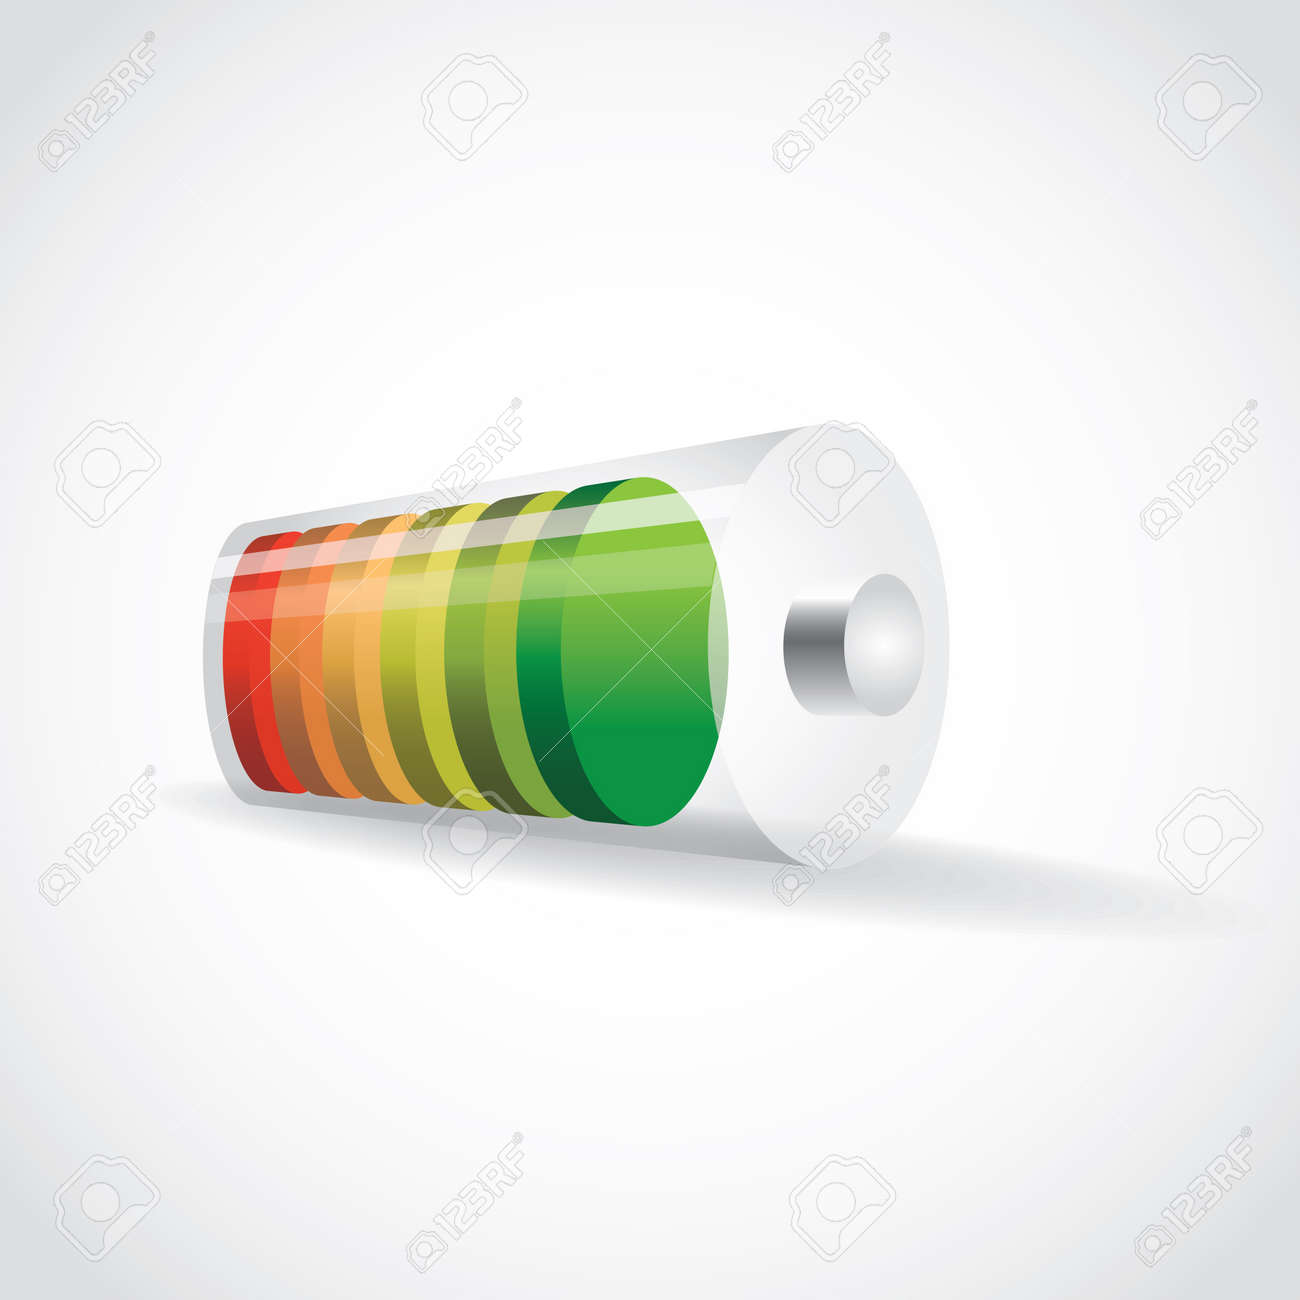 battery with color level of charge, illustration Stock Vector - 16720211